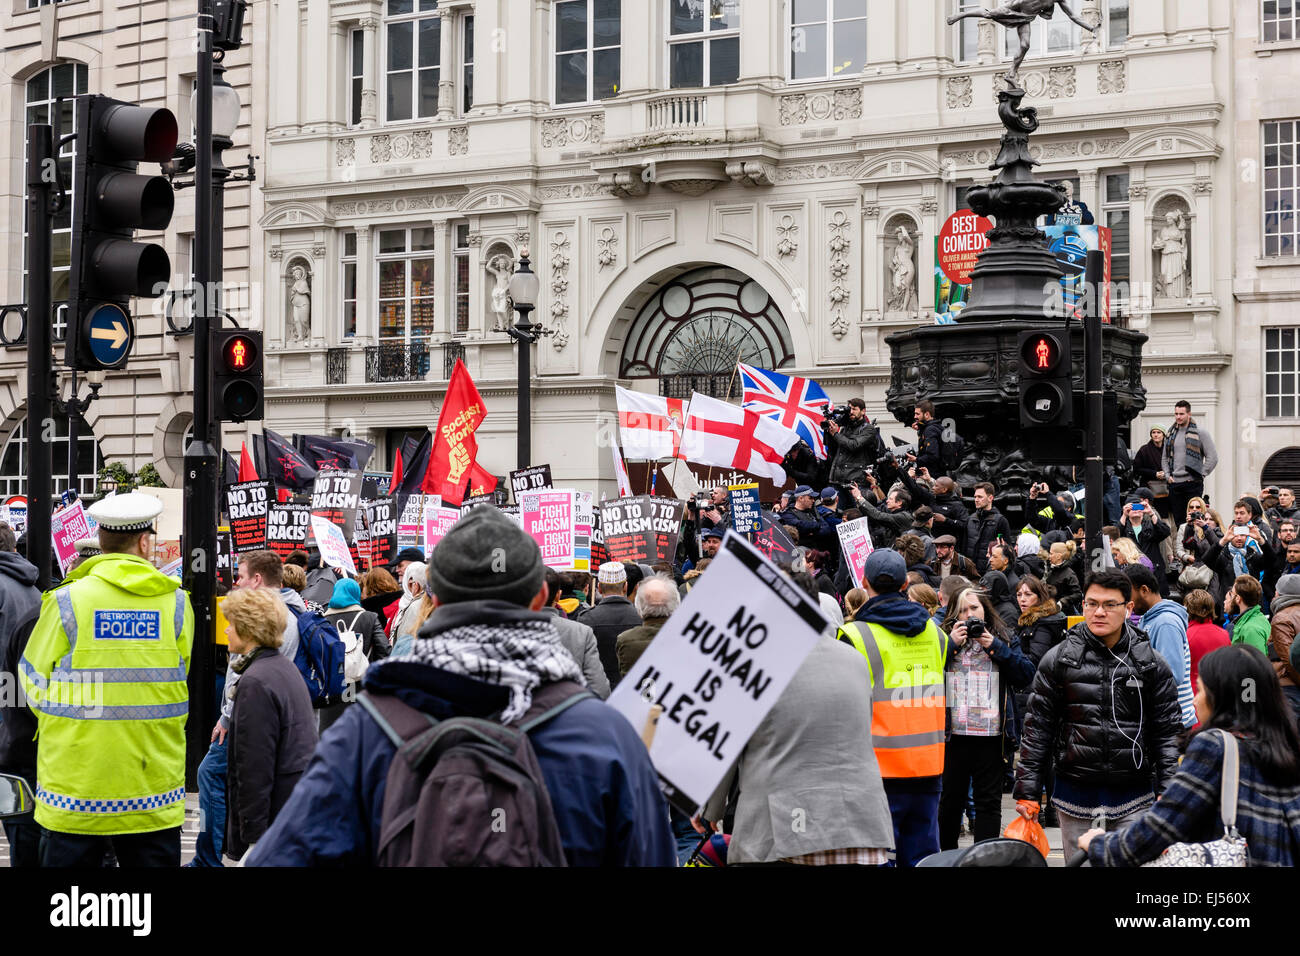 London, UK. 21st Mar, 2015. People marching through the streets of London in a march arranged by Unite Against Fascism - Stock Image